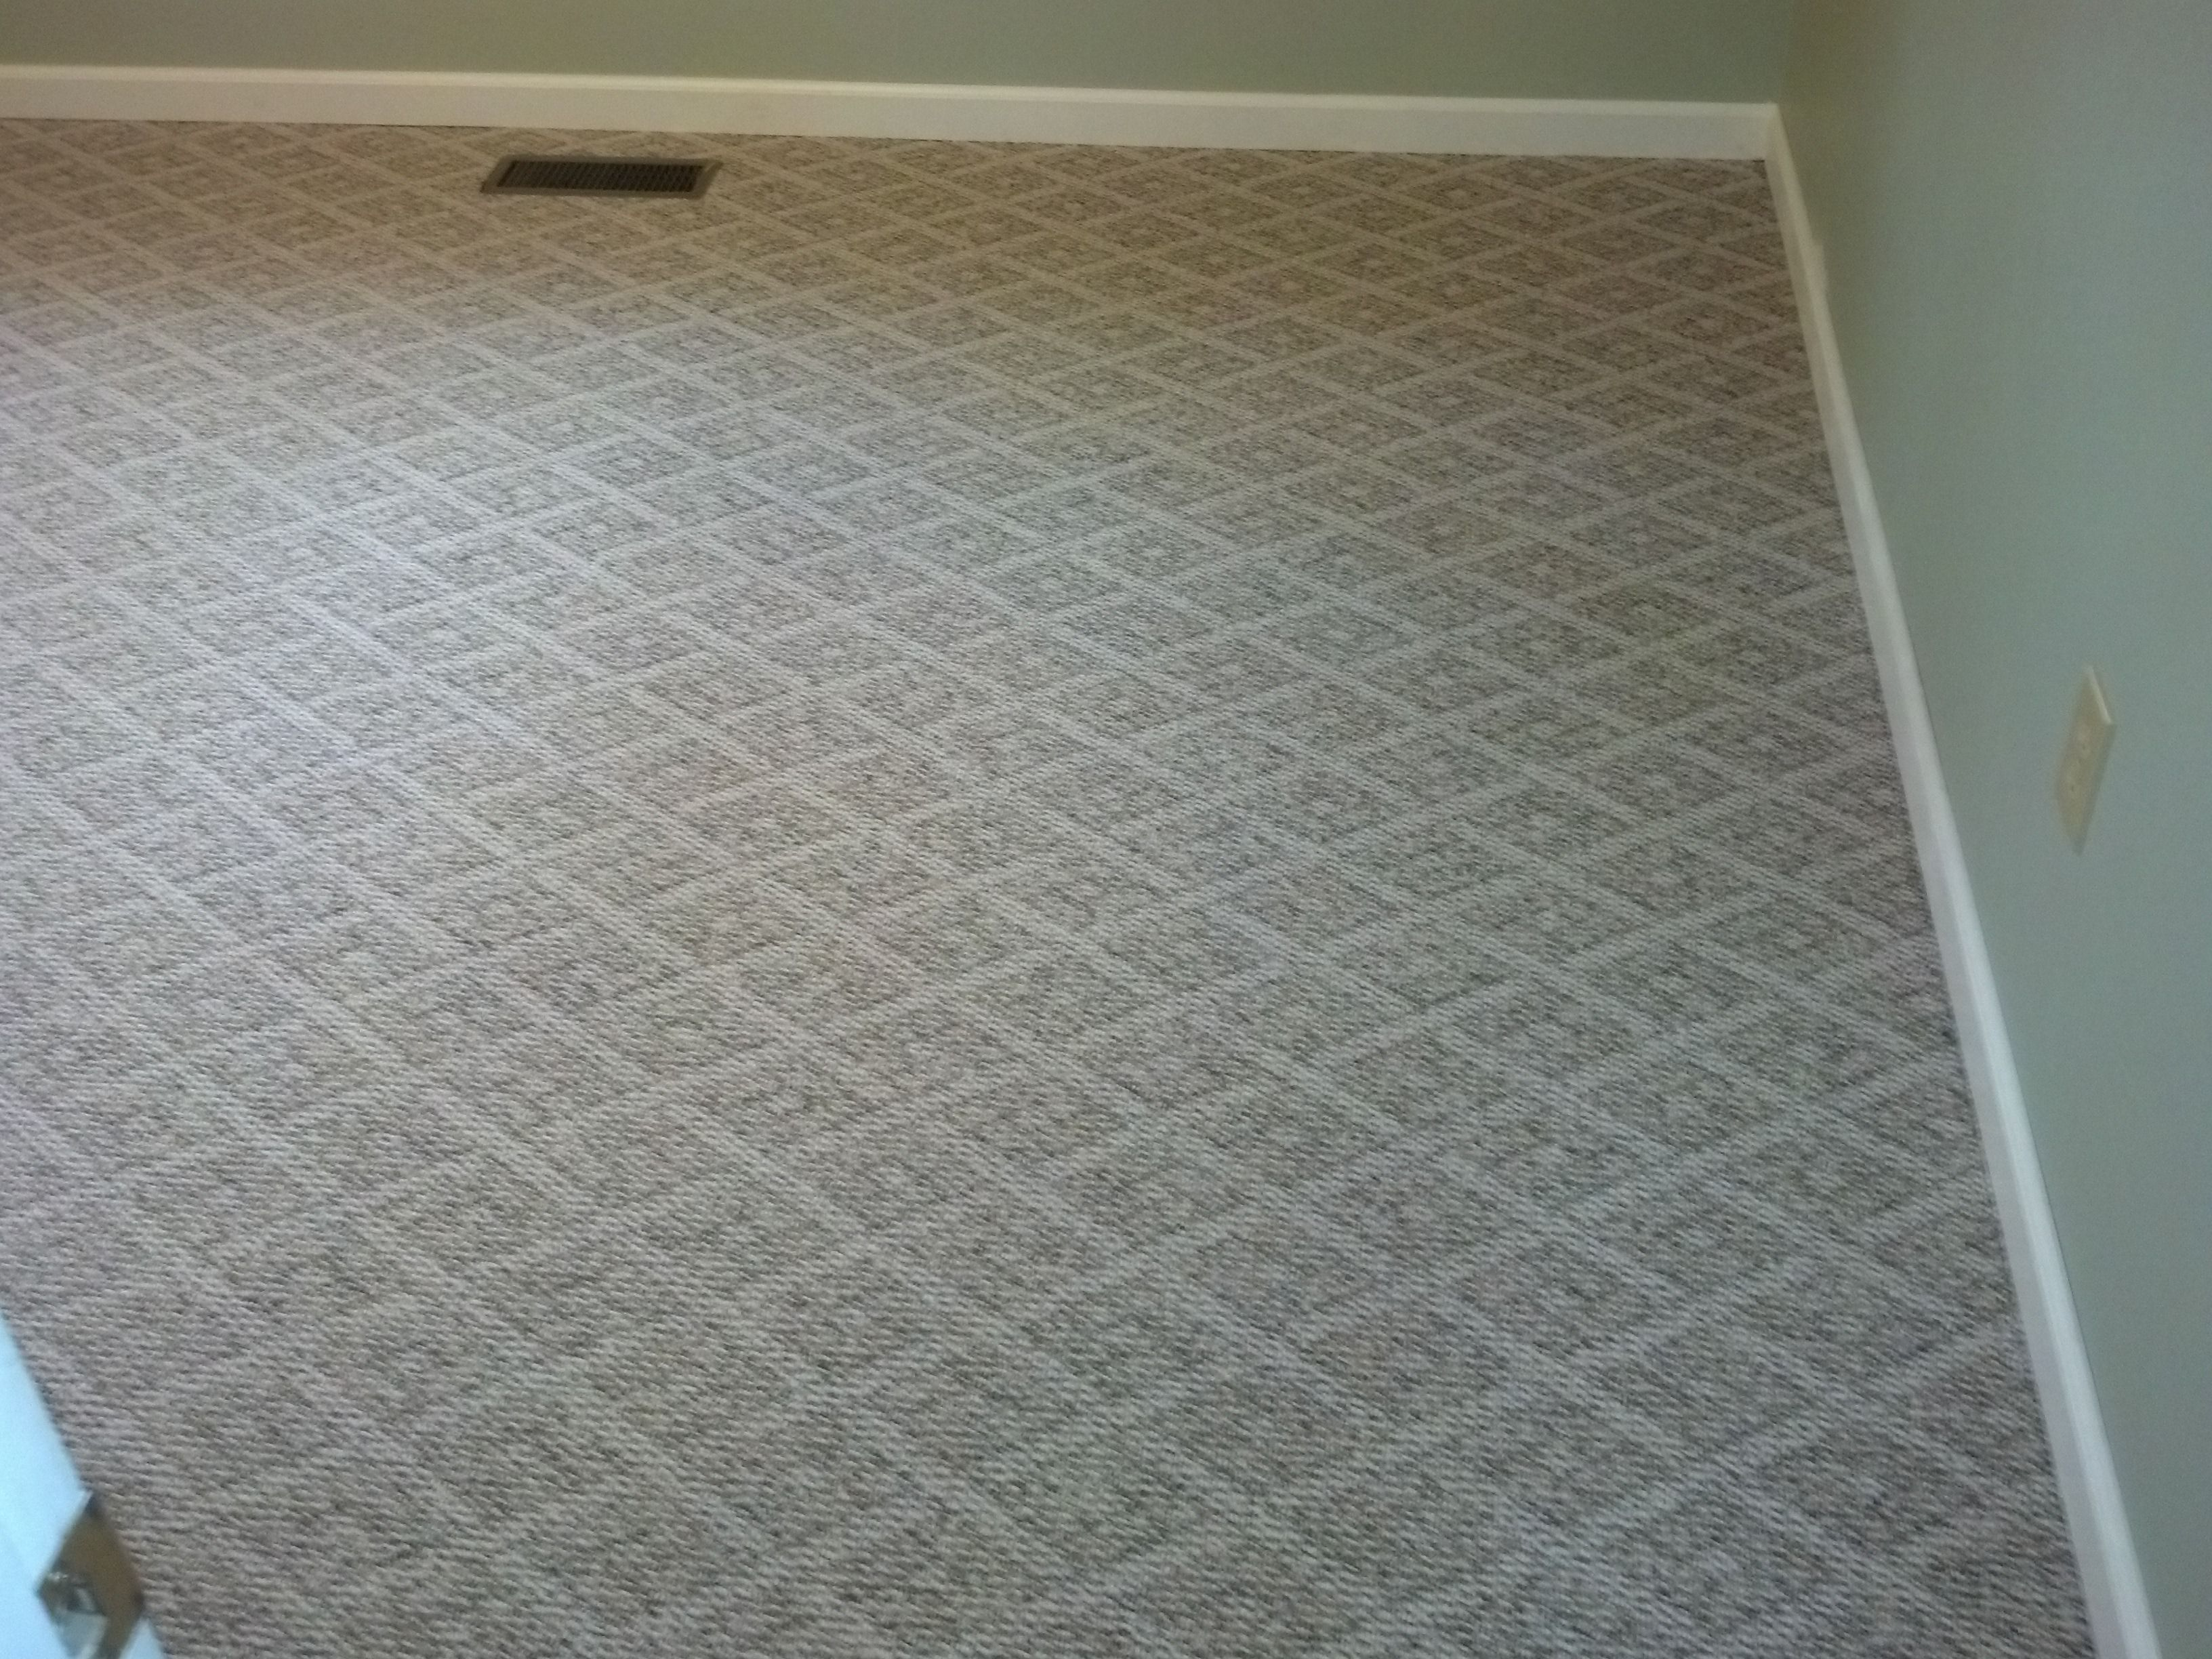 A best seller berber patterned carpet by beaulieu of america berber carpet cincinnati oh by beaulieu ibndustries south hampton color willowdale installed in family room cincinnati home based carpet flooring baanklon Choice Image